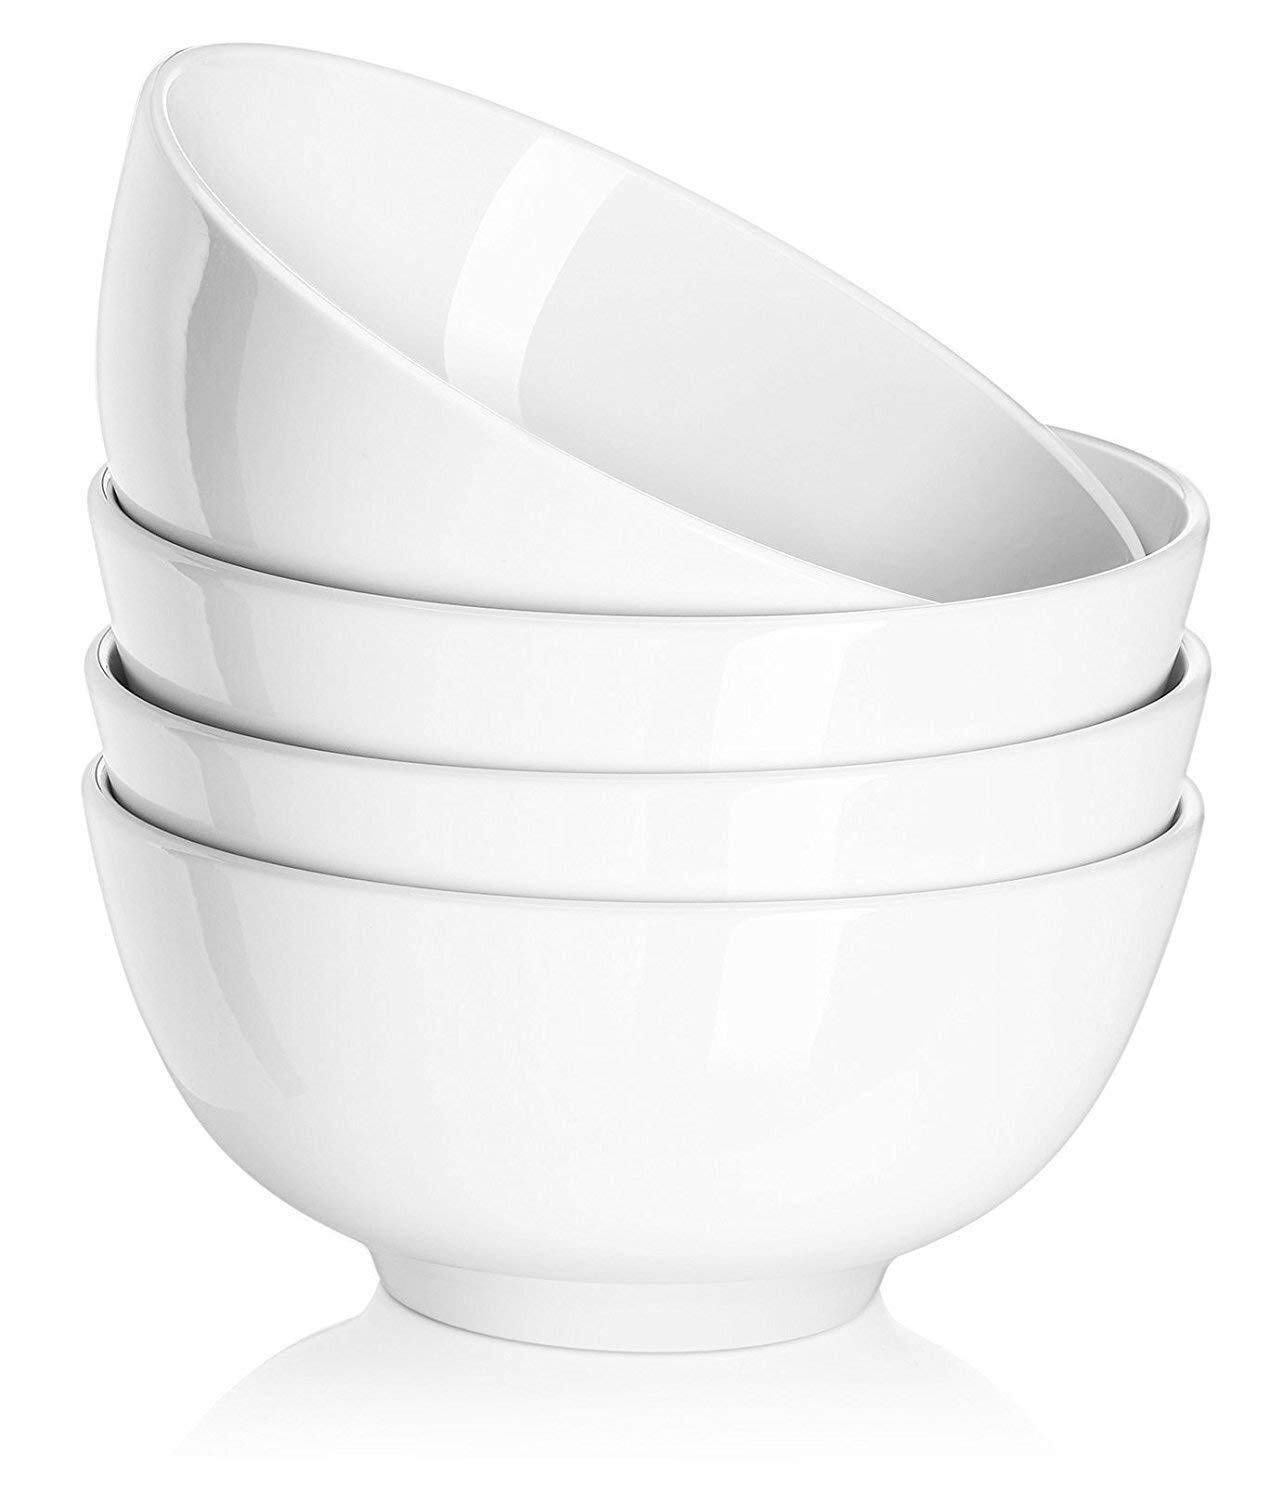 DOWAN 10-Ounce Porcelain Bowl Set - 8 Packs, White Sihai 010101150514014